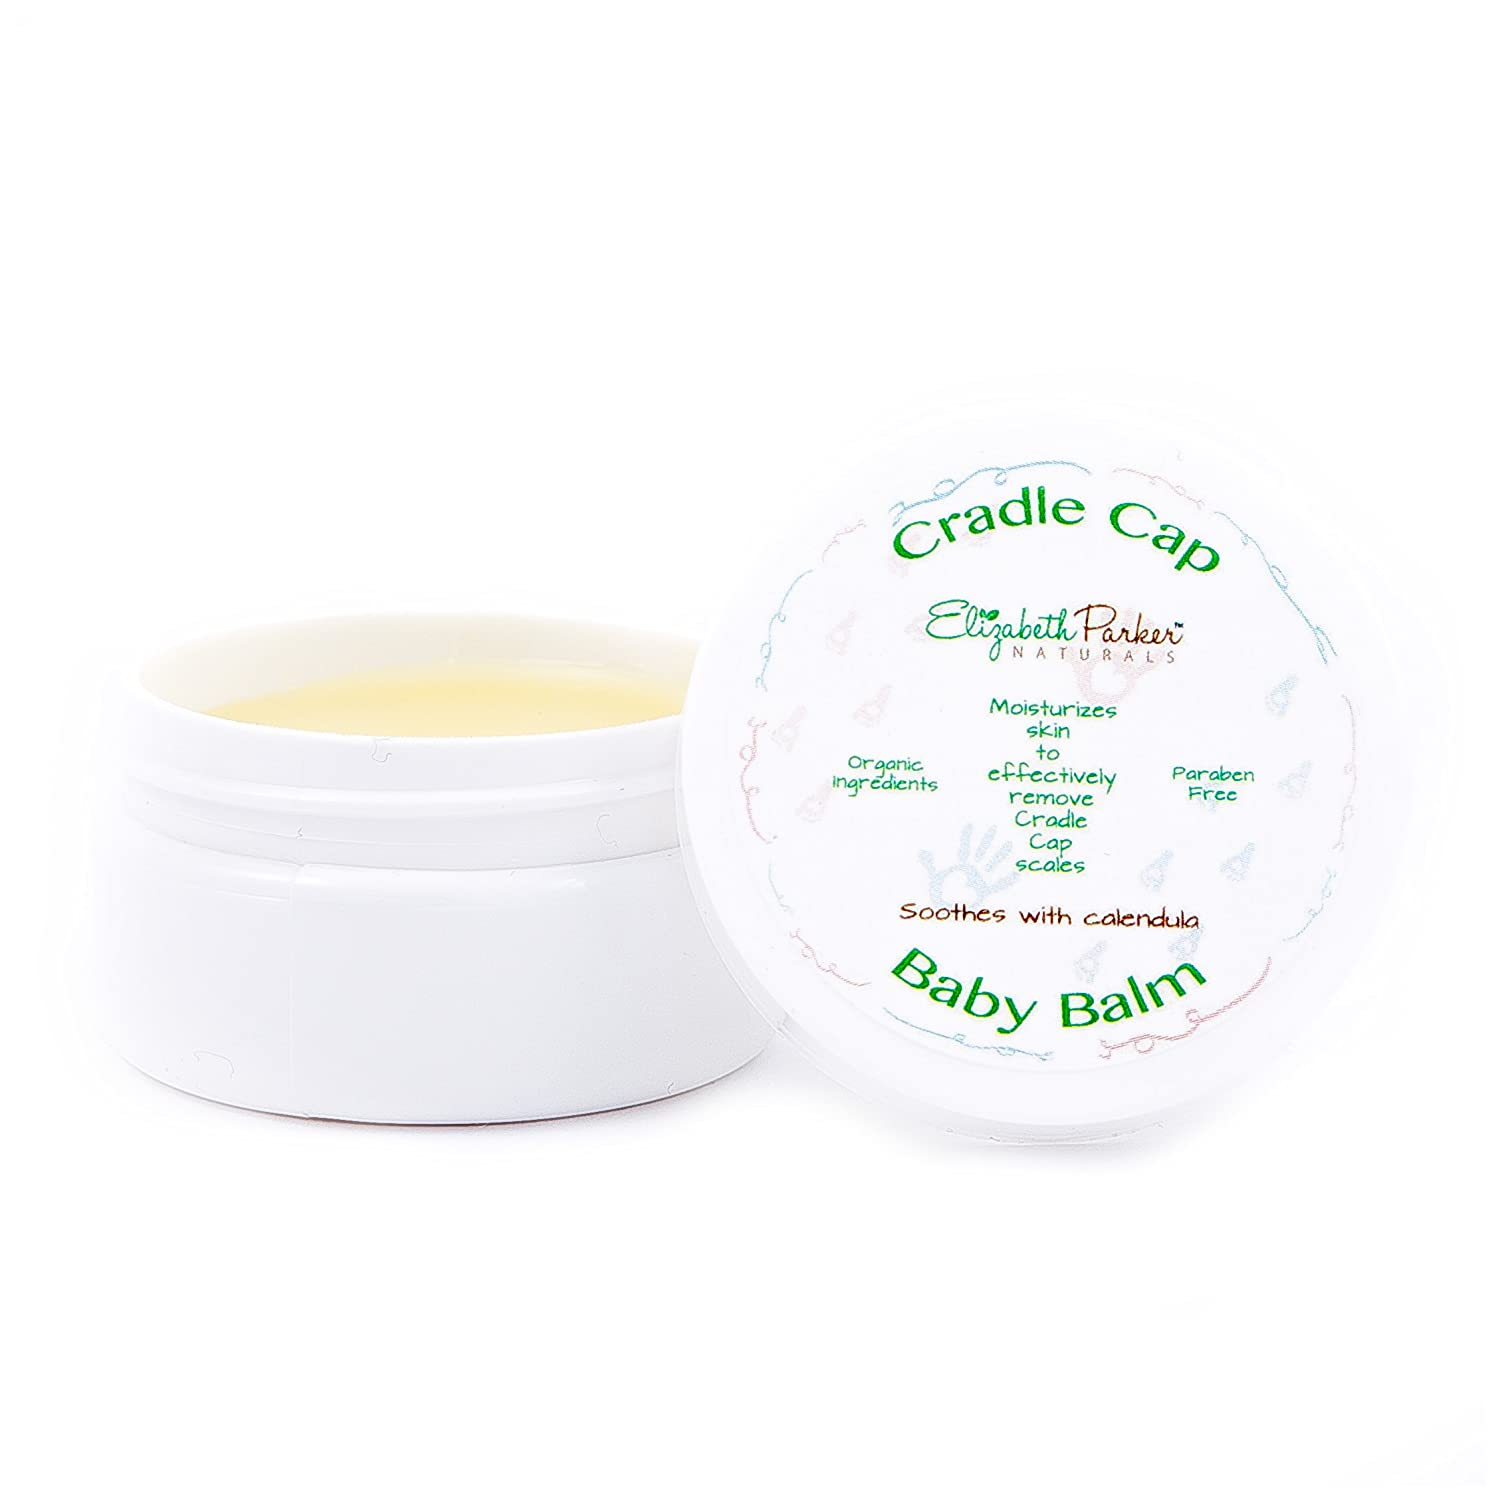 Cradle Cap Balm - Gently Remove Flakes and Scales with Essential Oils Elizabeth Parker Naturals